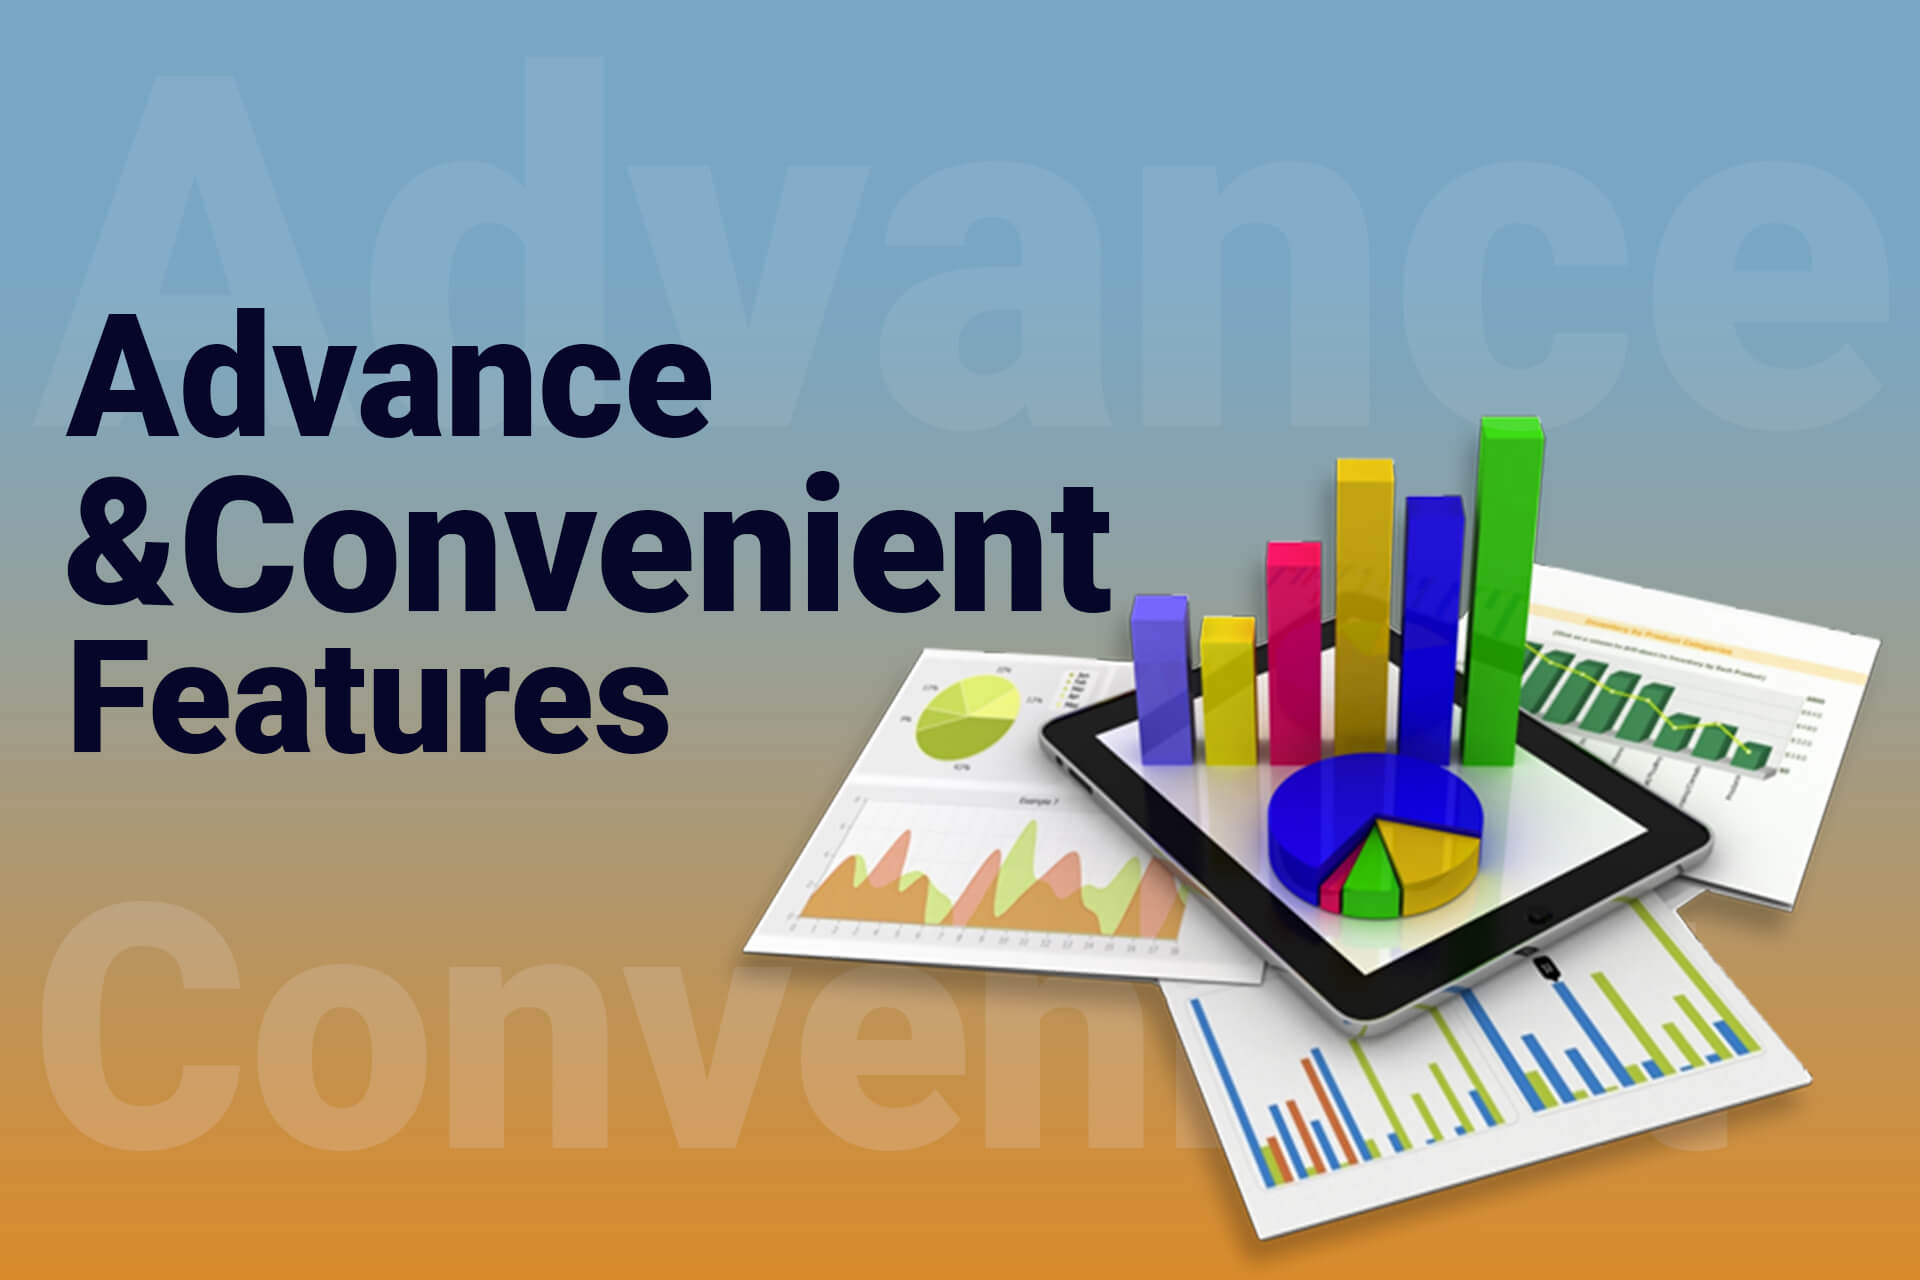 Advance and convenient features of salesforce